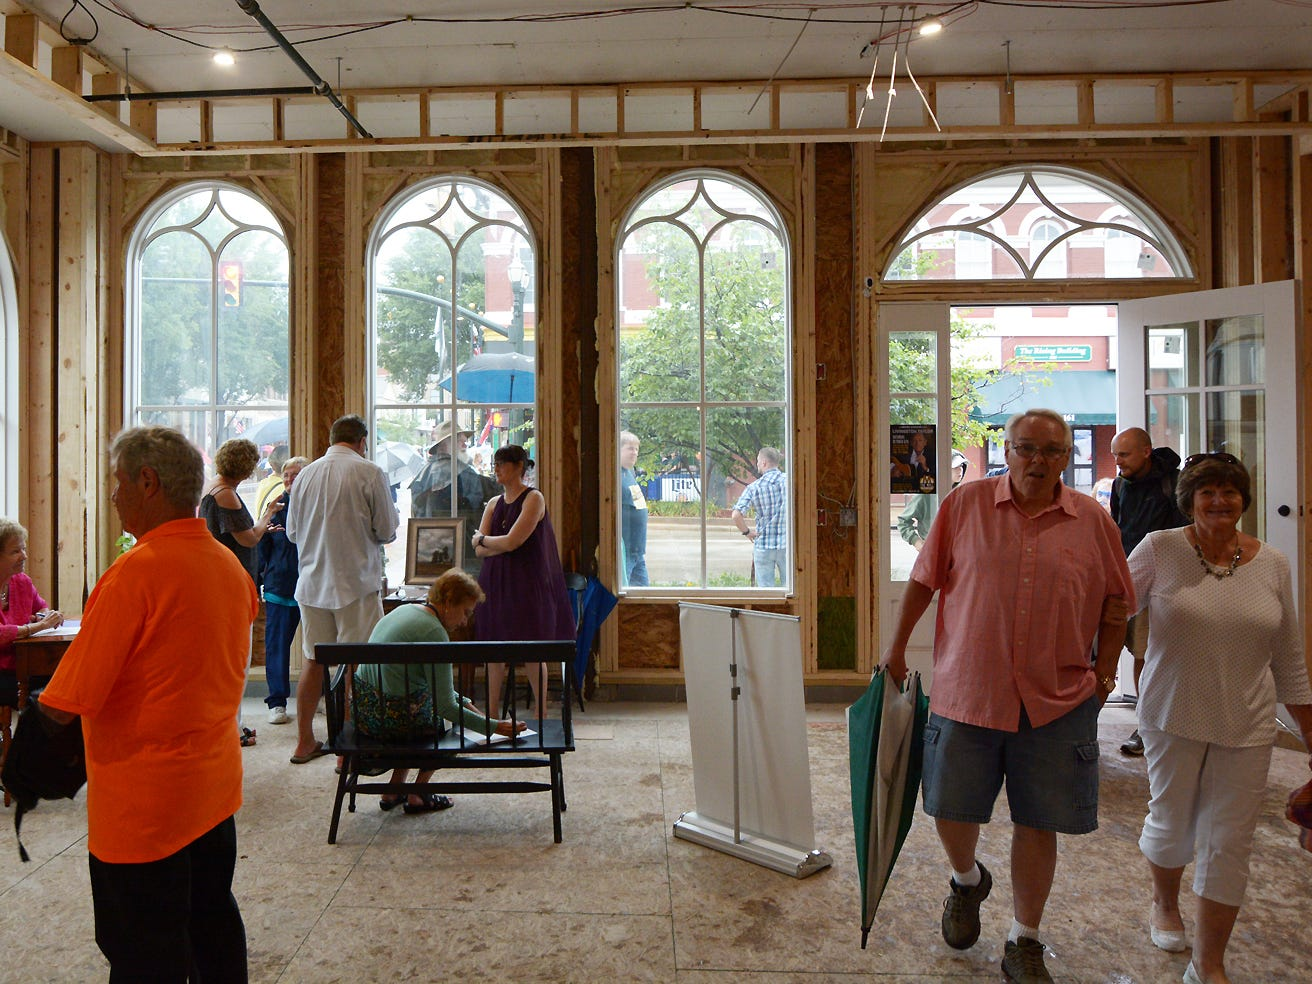 People look around the gallery inside of the Mithoff building in its unfinshed state Friday evening, July 20, 2018, during the Lancaster Festival ArtWalk.